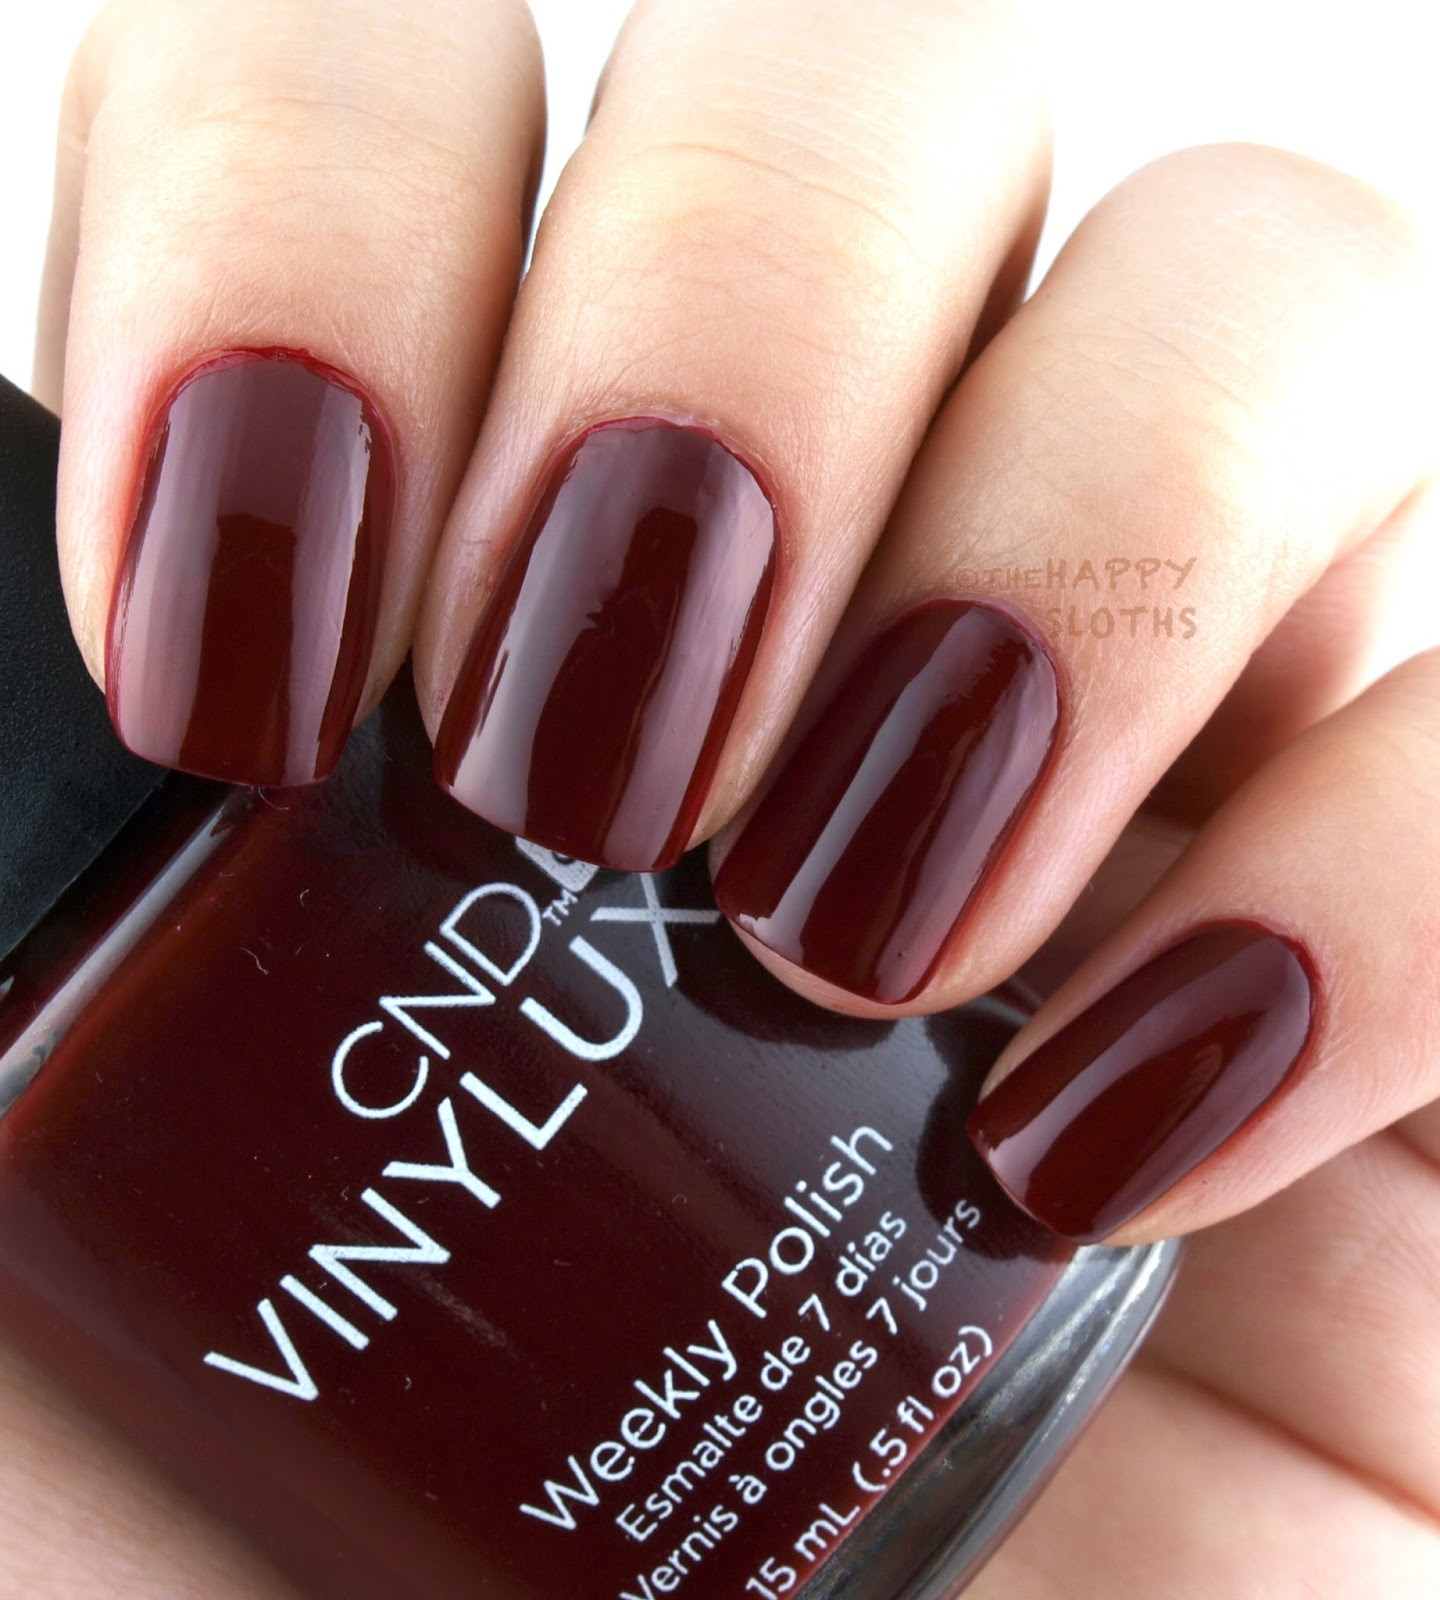 CND Fall 2016 Craft Culture Collection: Review | The Happy Sloths ...